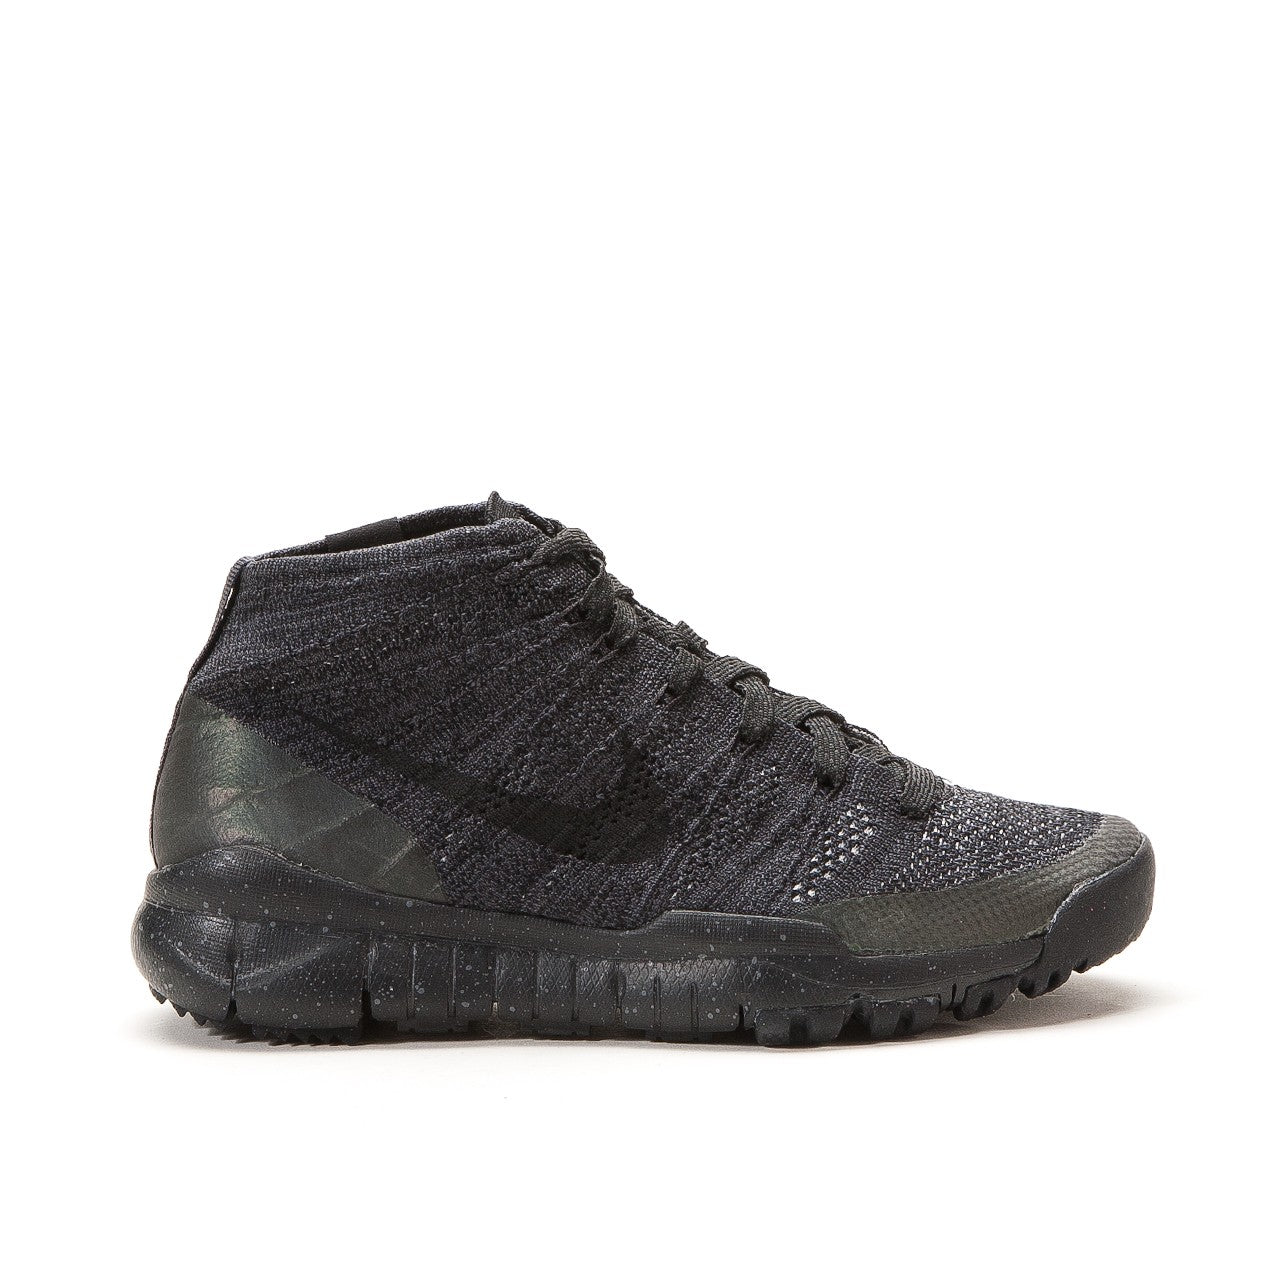 Nike Women's Flyknit Training Chukka FSB Shoe Black 805093-001 NEW Sz 6.5 US